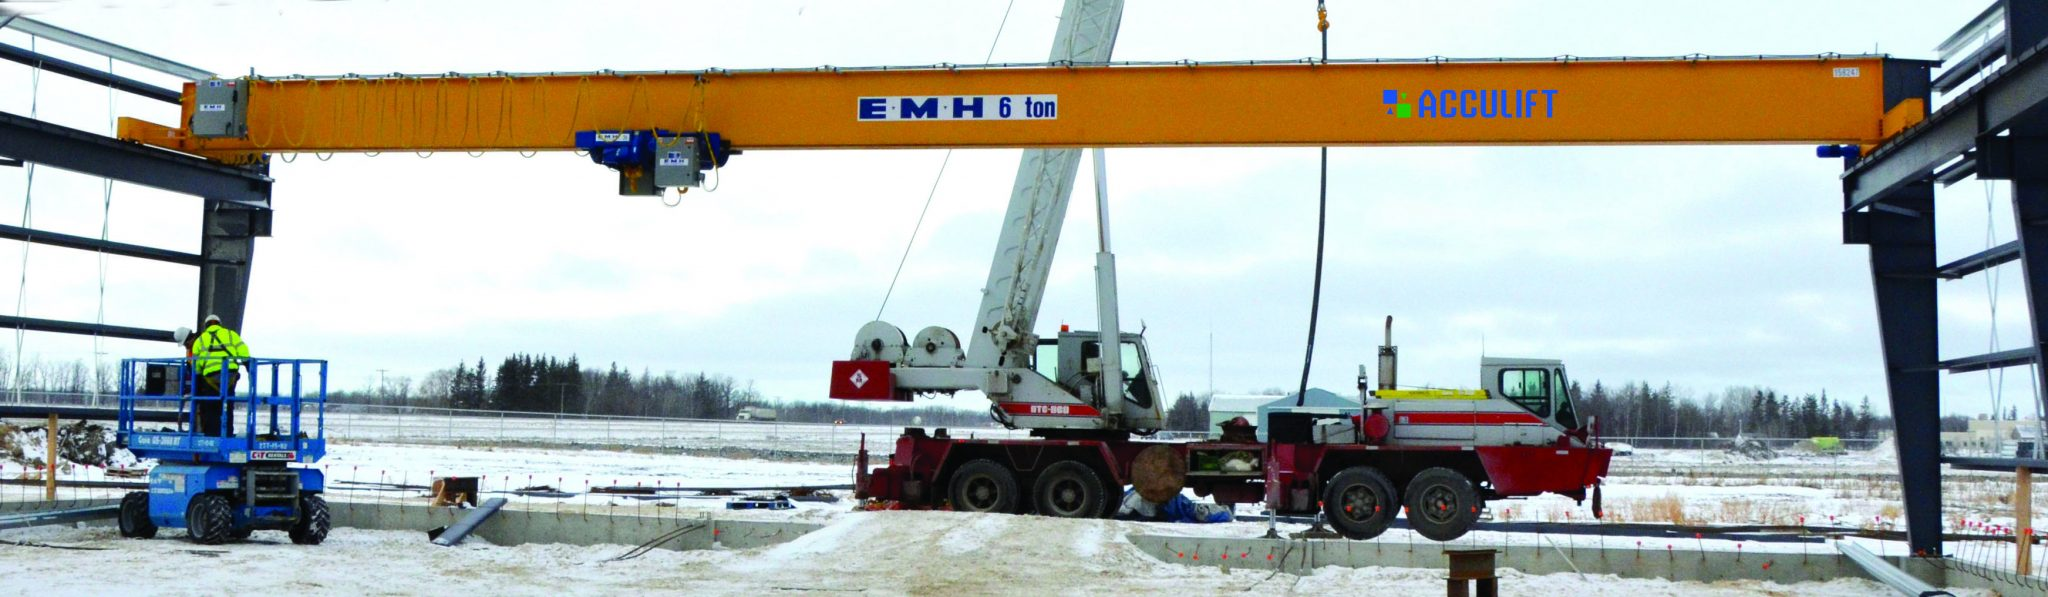 bridge crane inspections certified manitoba saskatchewan